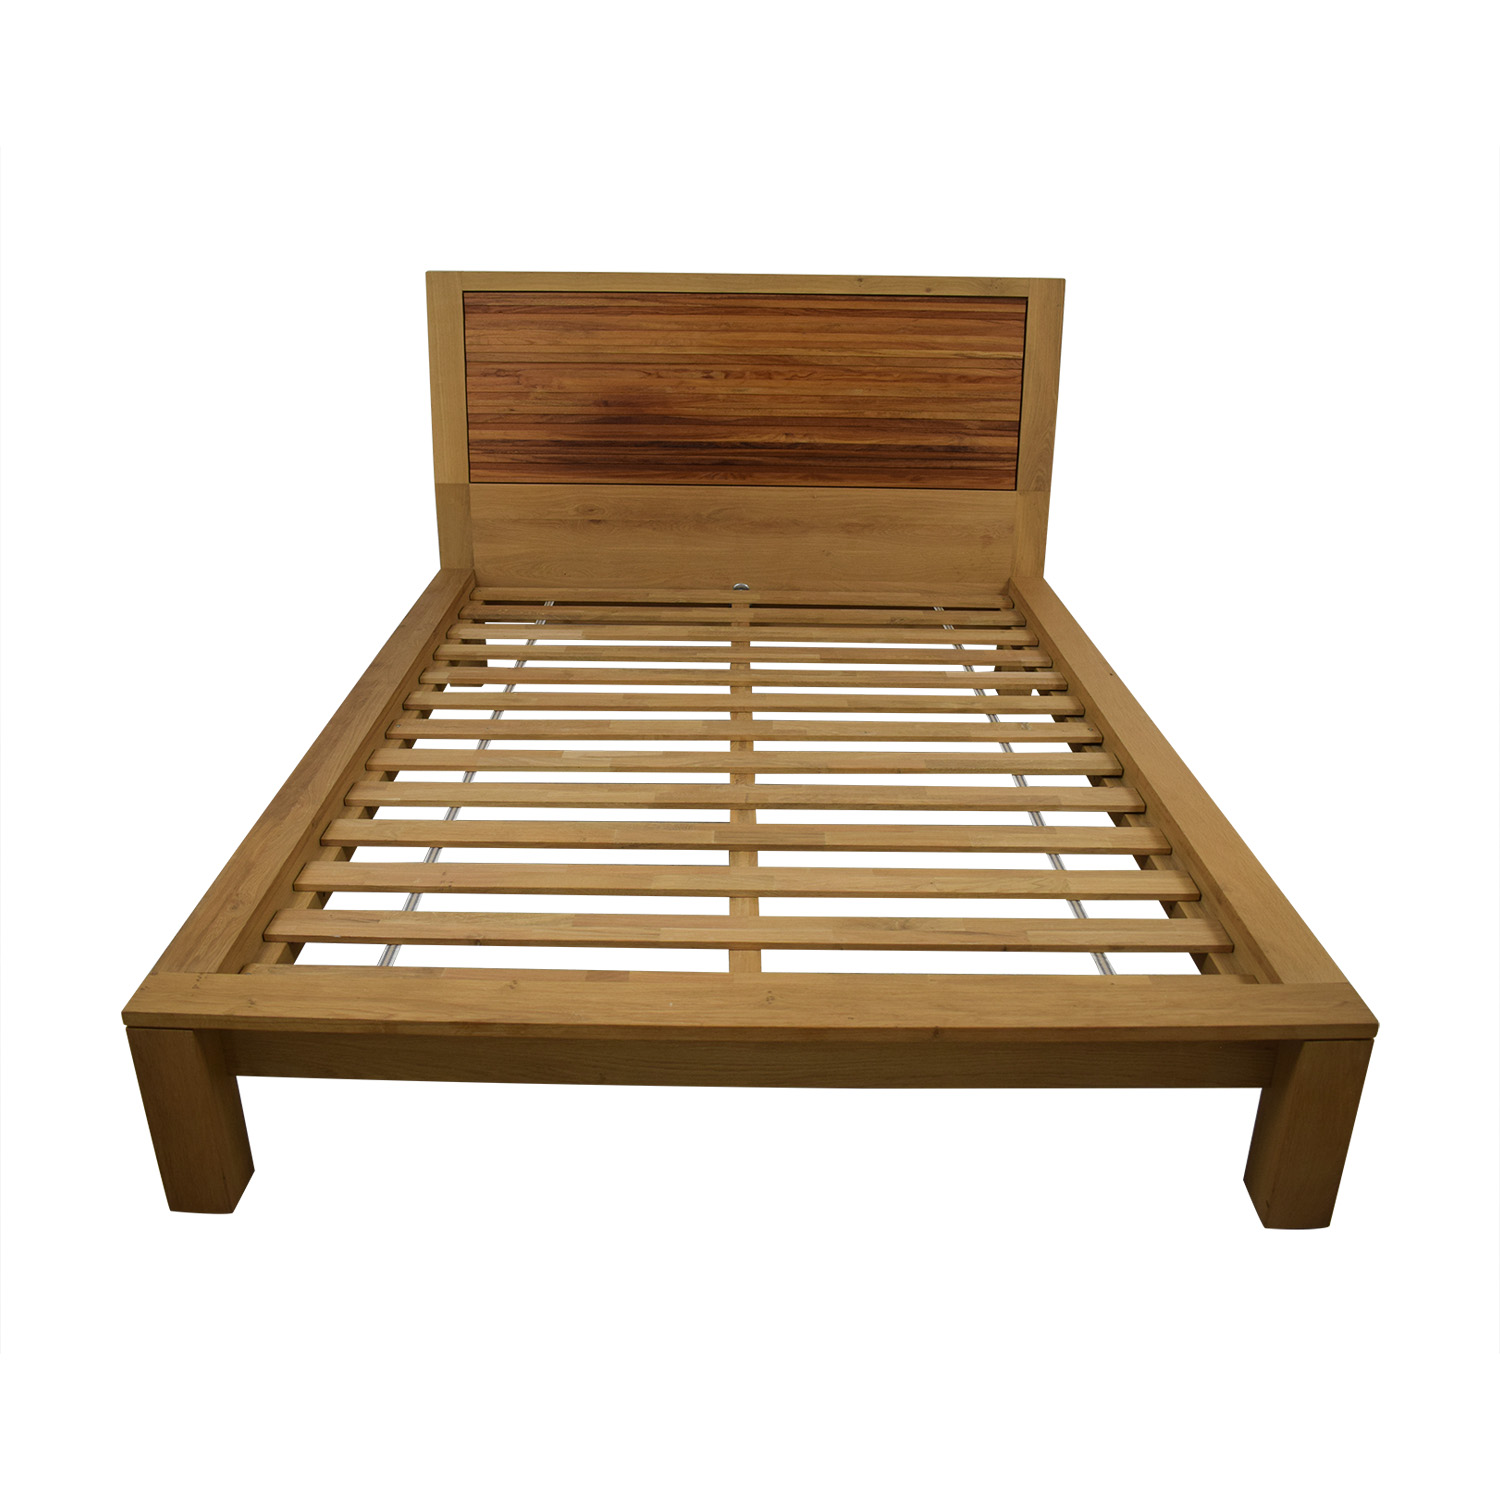 Crate Barrel Sierra Queen Platform Bed Frame Dimensions